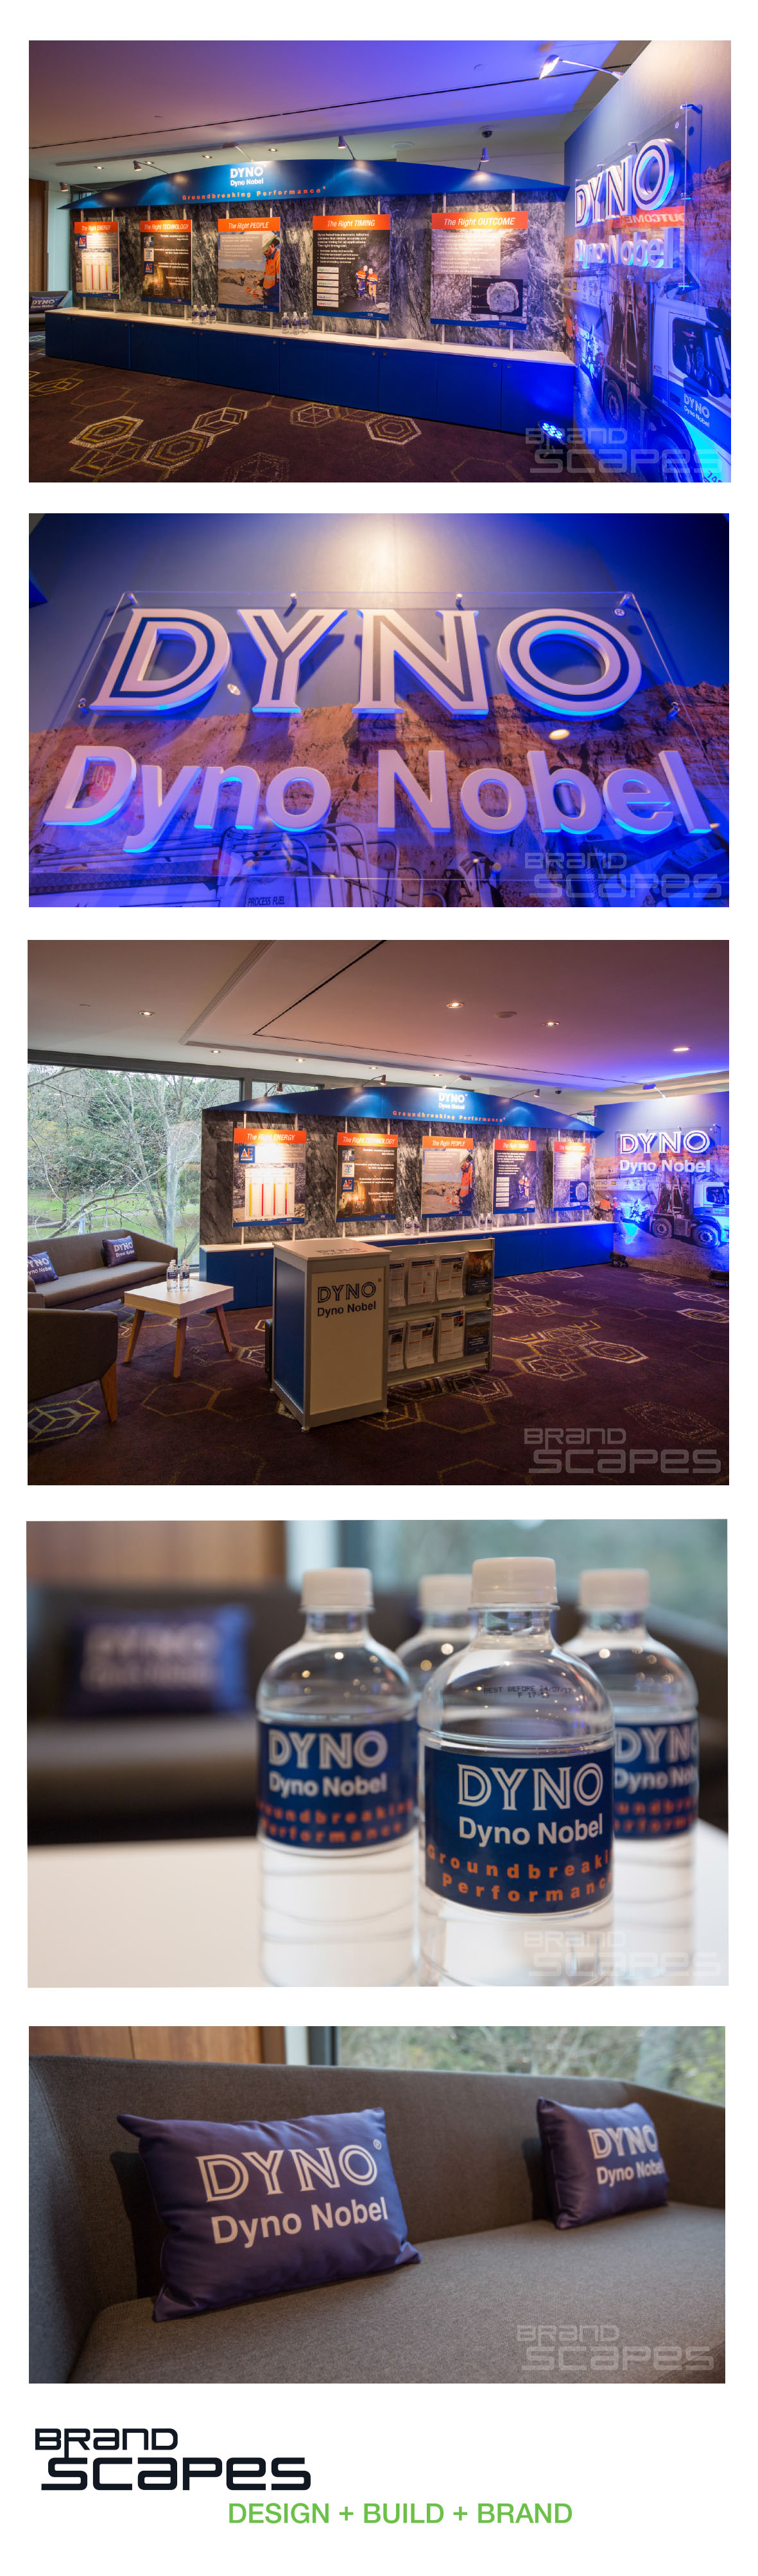 A dynamic branded space was created within the constraints of a hotel conference room.  Exhibition Stand ideas. #Tradeshow #design and construction. Custom stand builders Melbourne, Sydney & Brisbane. Expo and event tips #design #3dbranding #brandingexperts #experience #brandenvironment #marketing #spatialdesign #exhibitiondesign #custom #melbournemakers #customstand #standdesign #tradeshowstand #communication #graphicdesign #reclaimedwood #interior #hardwood #woodwork #retaildesign #retail